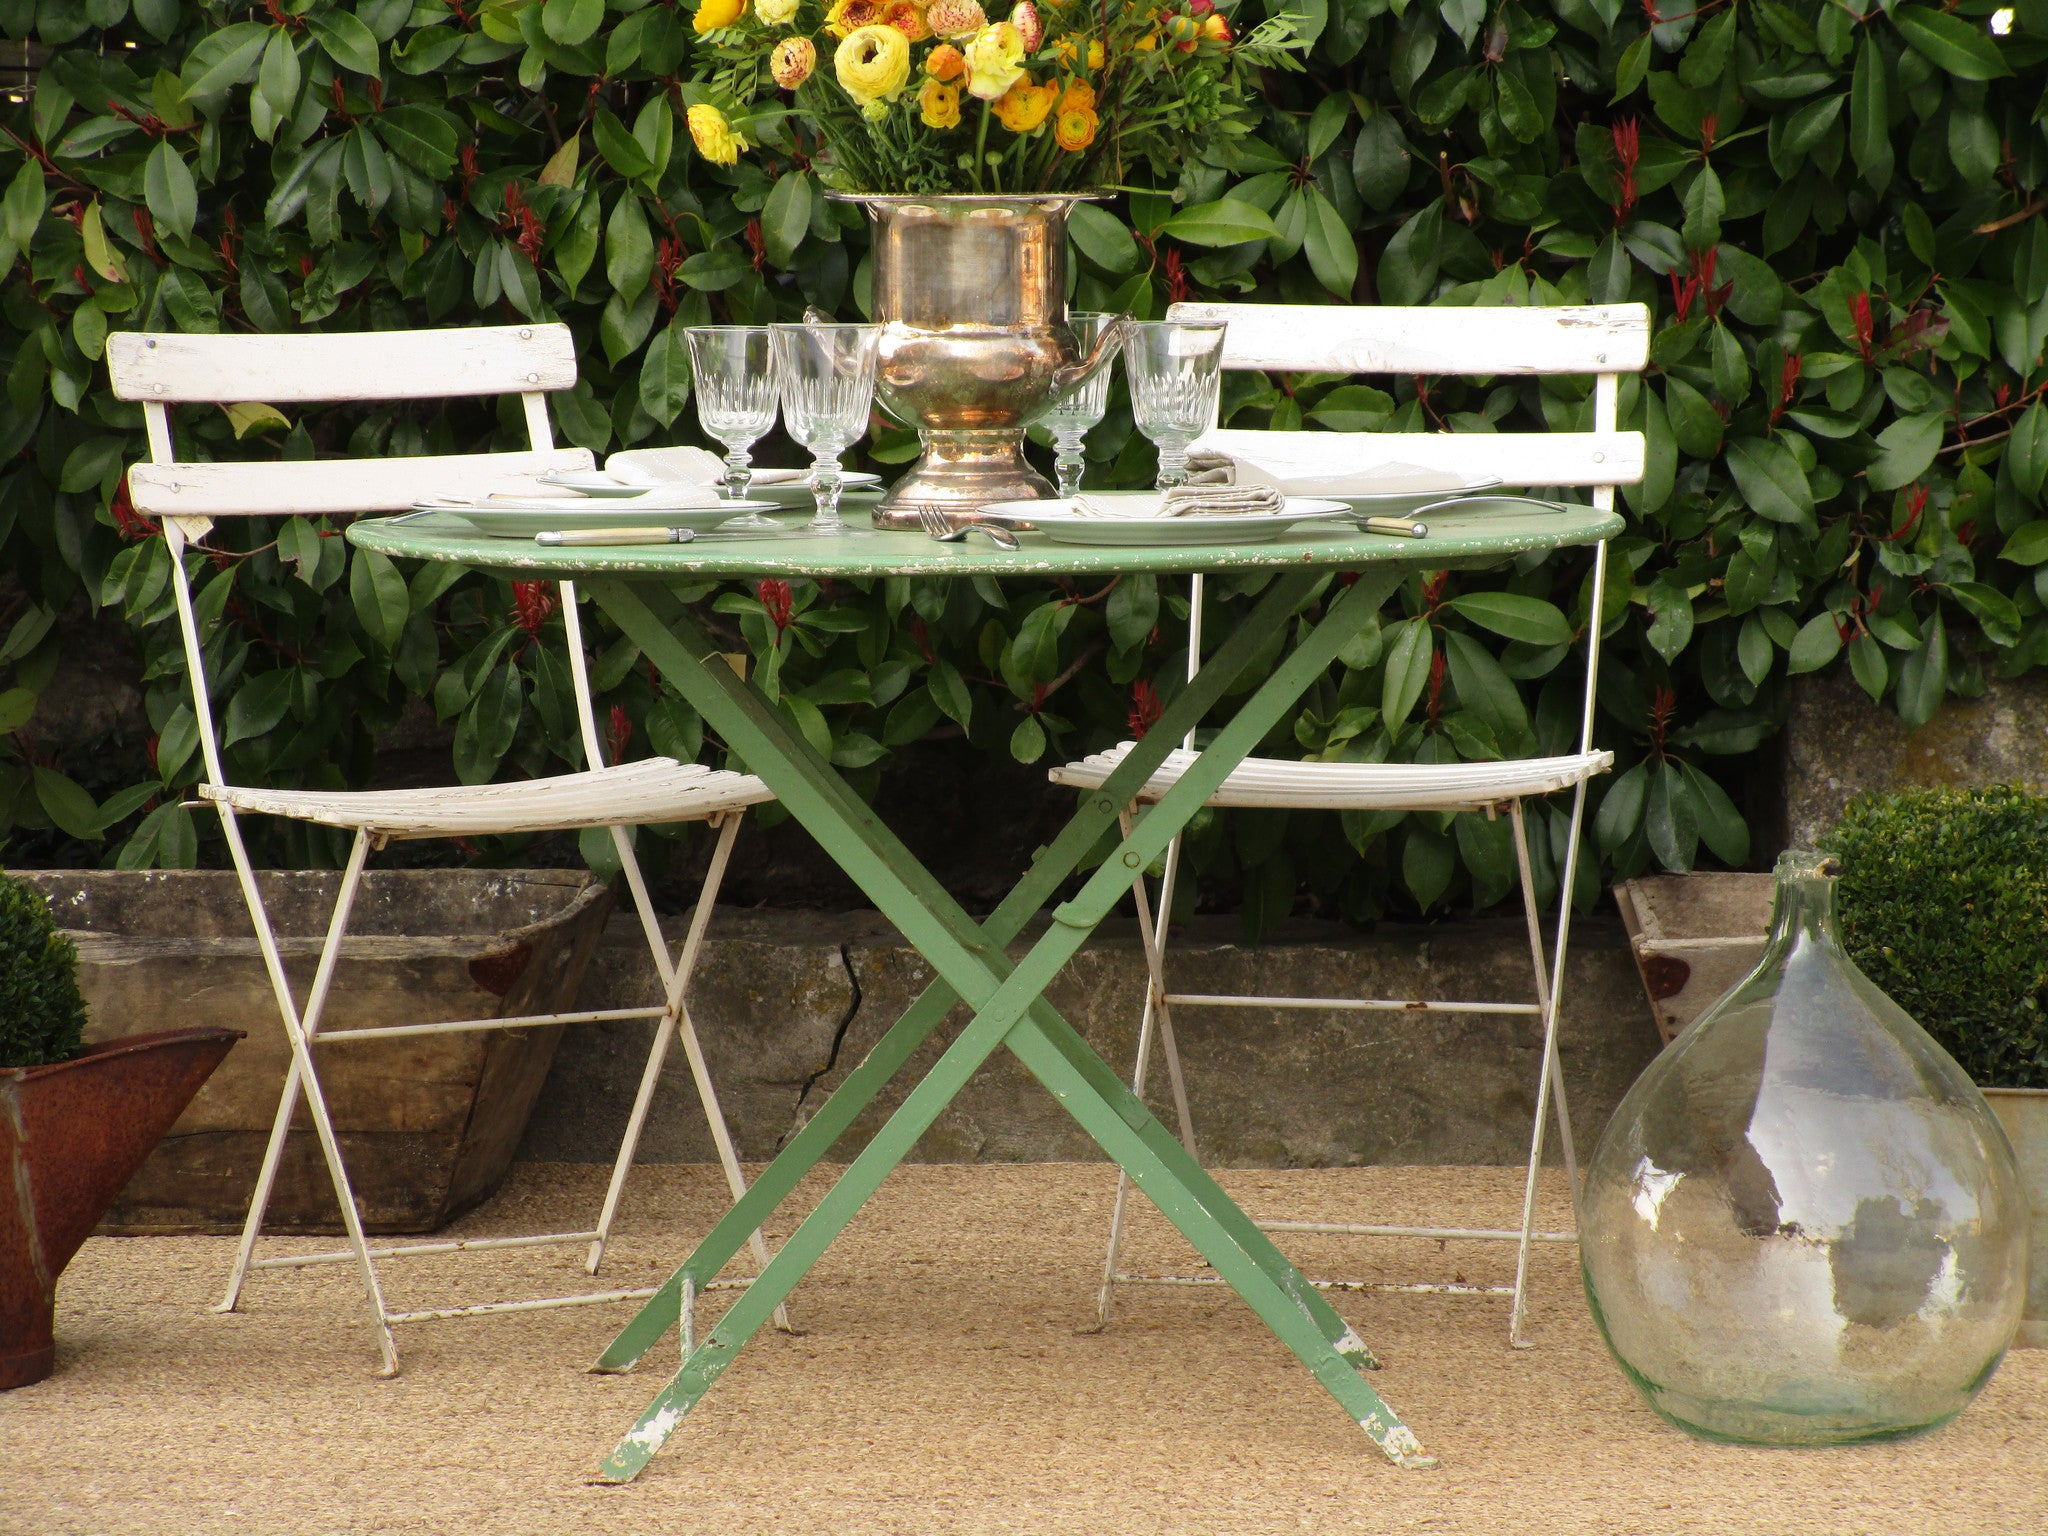 Round French folding bistro table – green four person